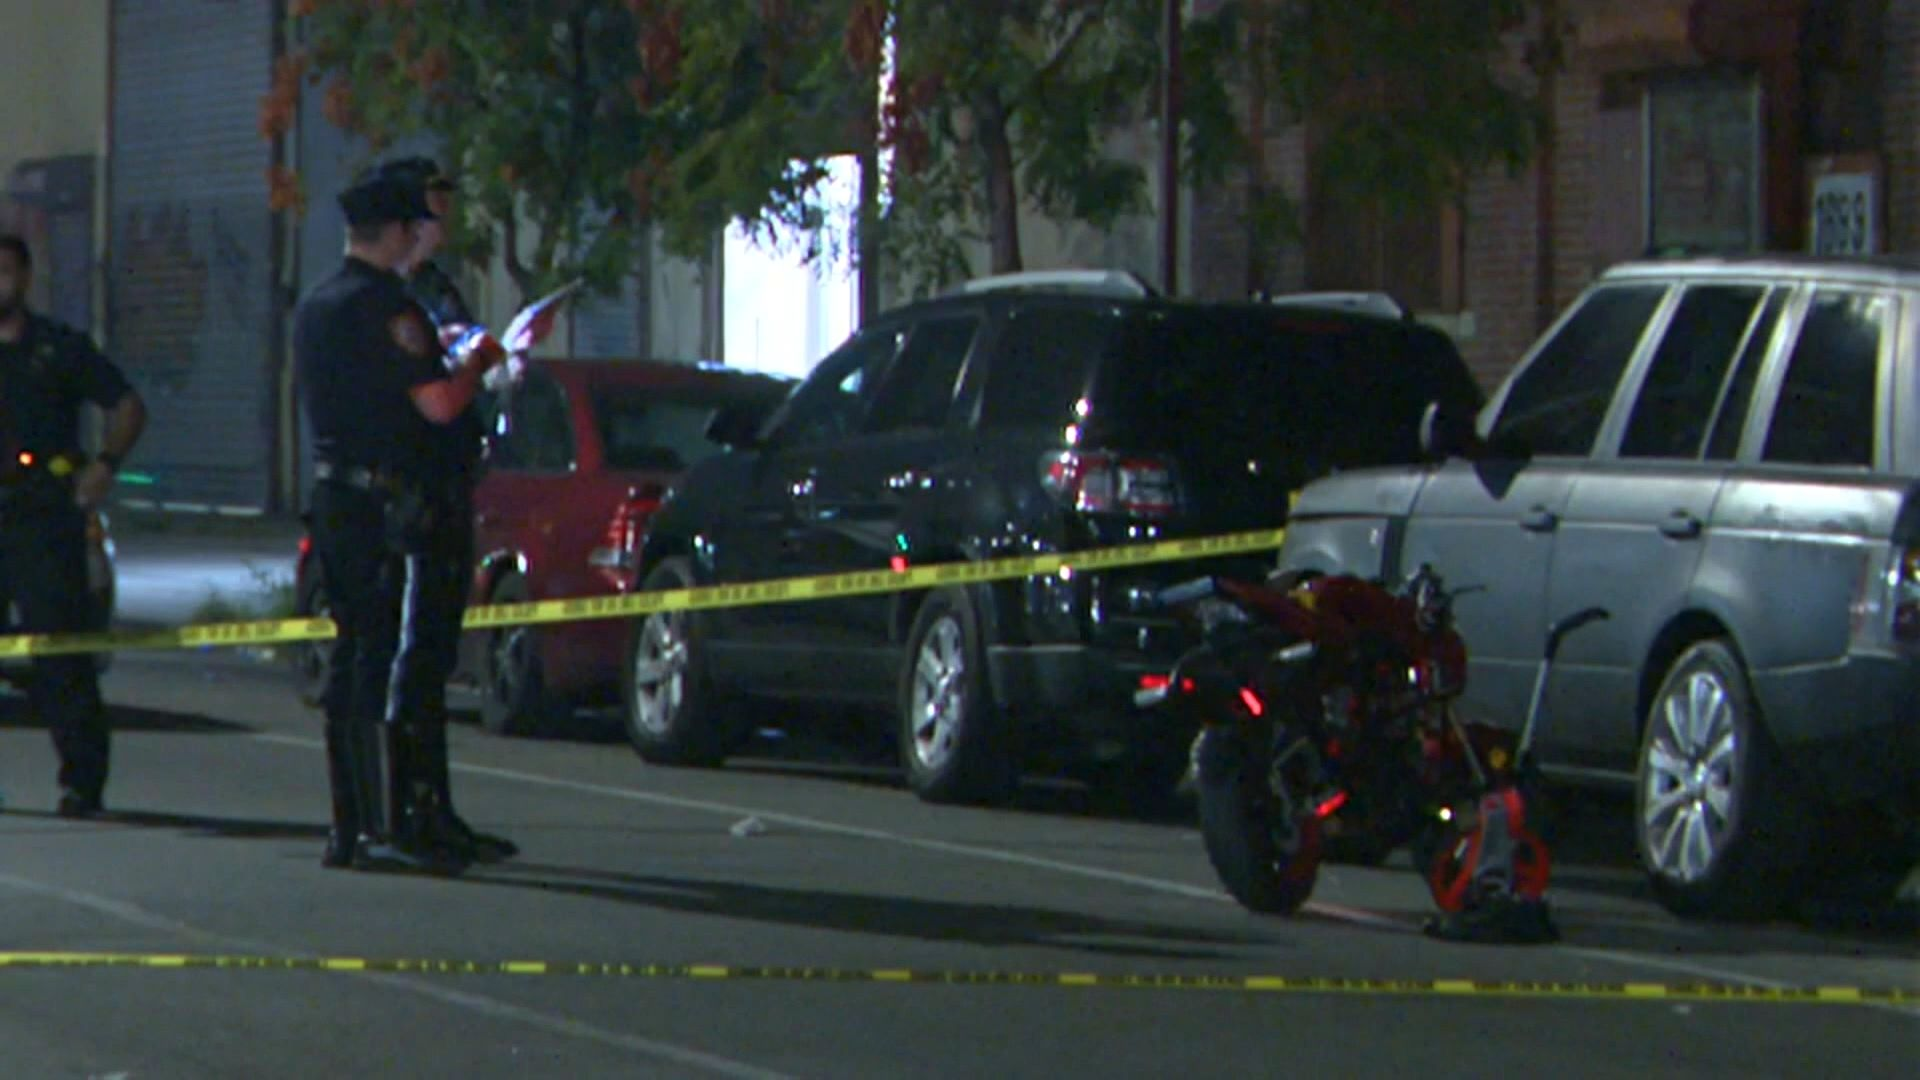 Child struck by motorcycle in Brooklyn